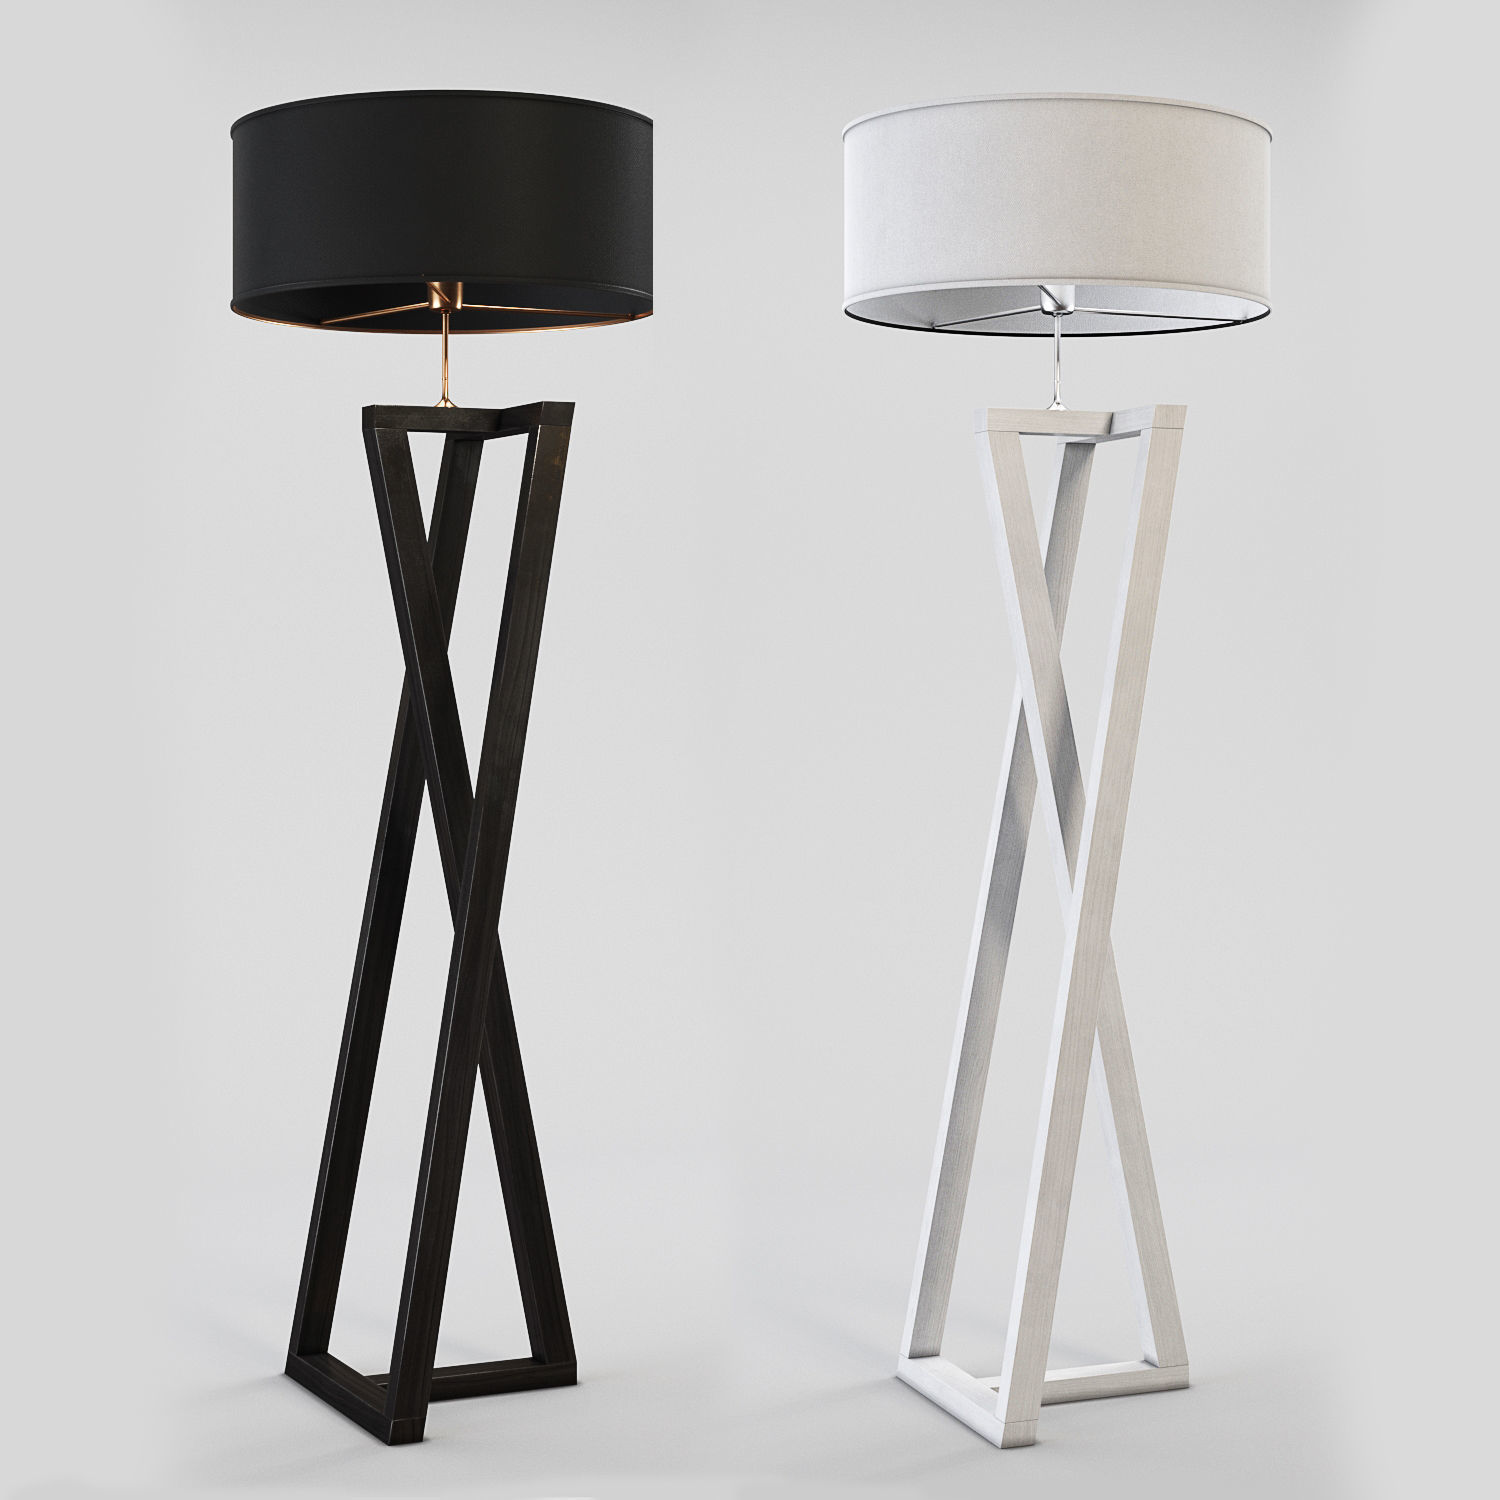 Picture of: 3d Floor Lamp Black And White Wood Cgtrader